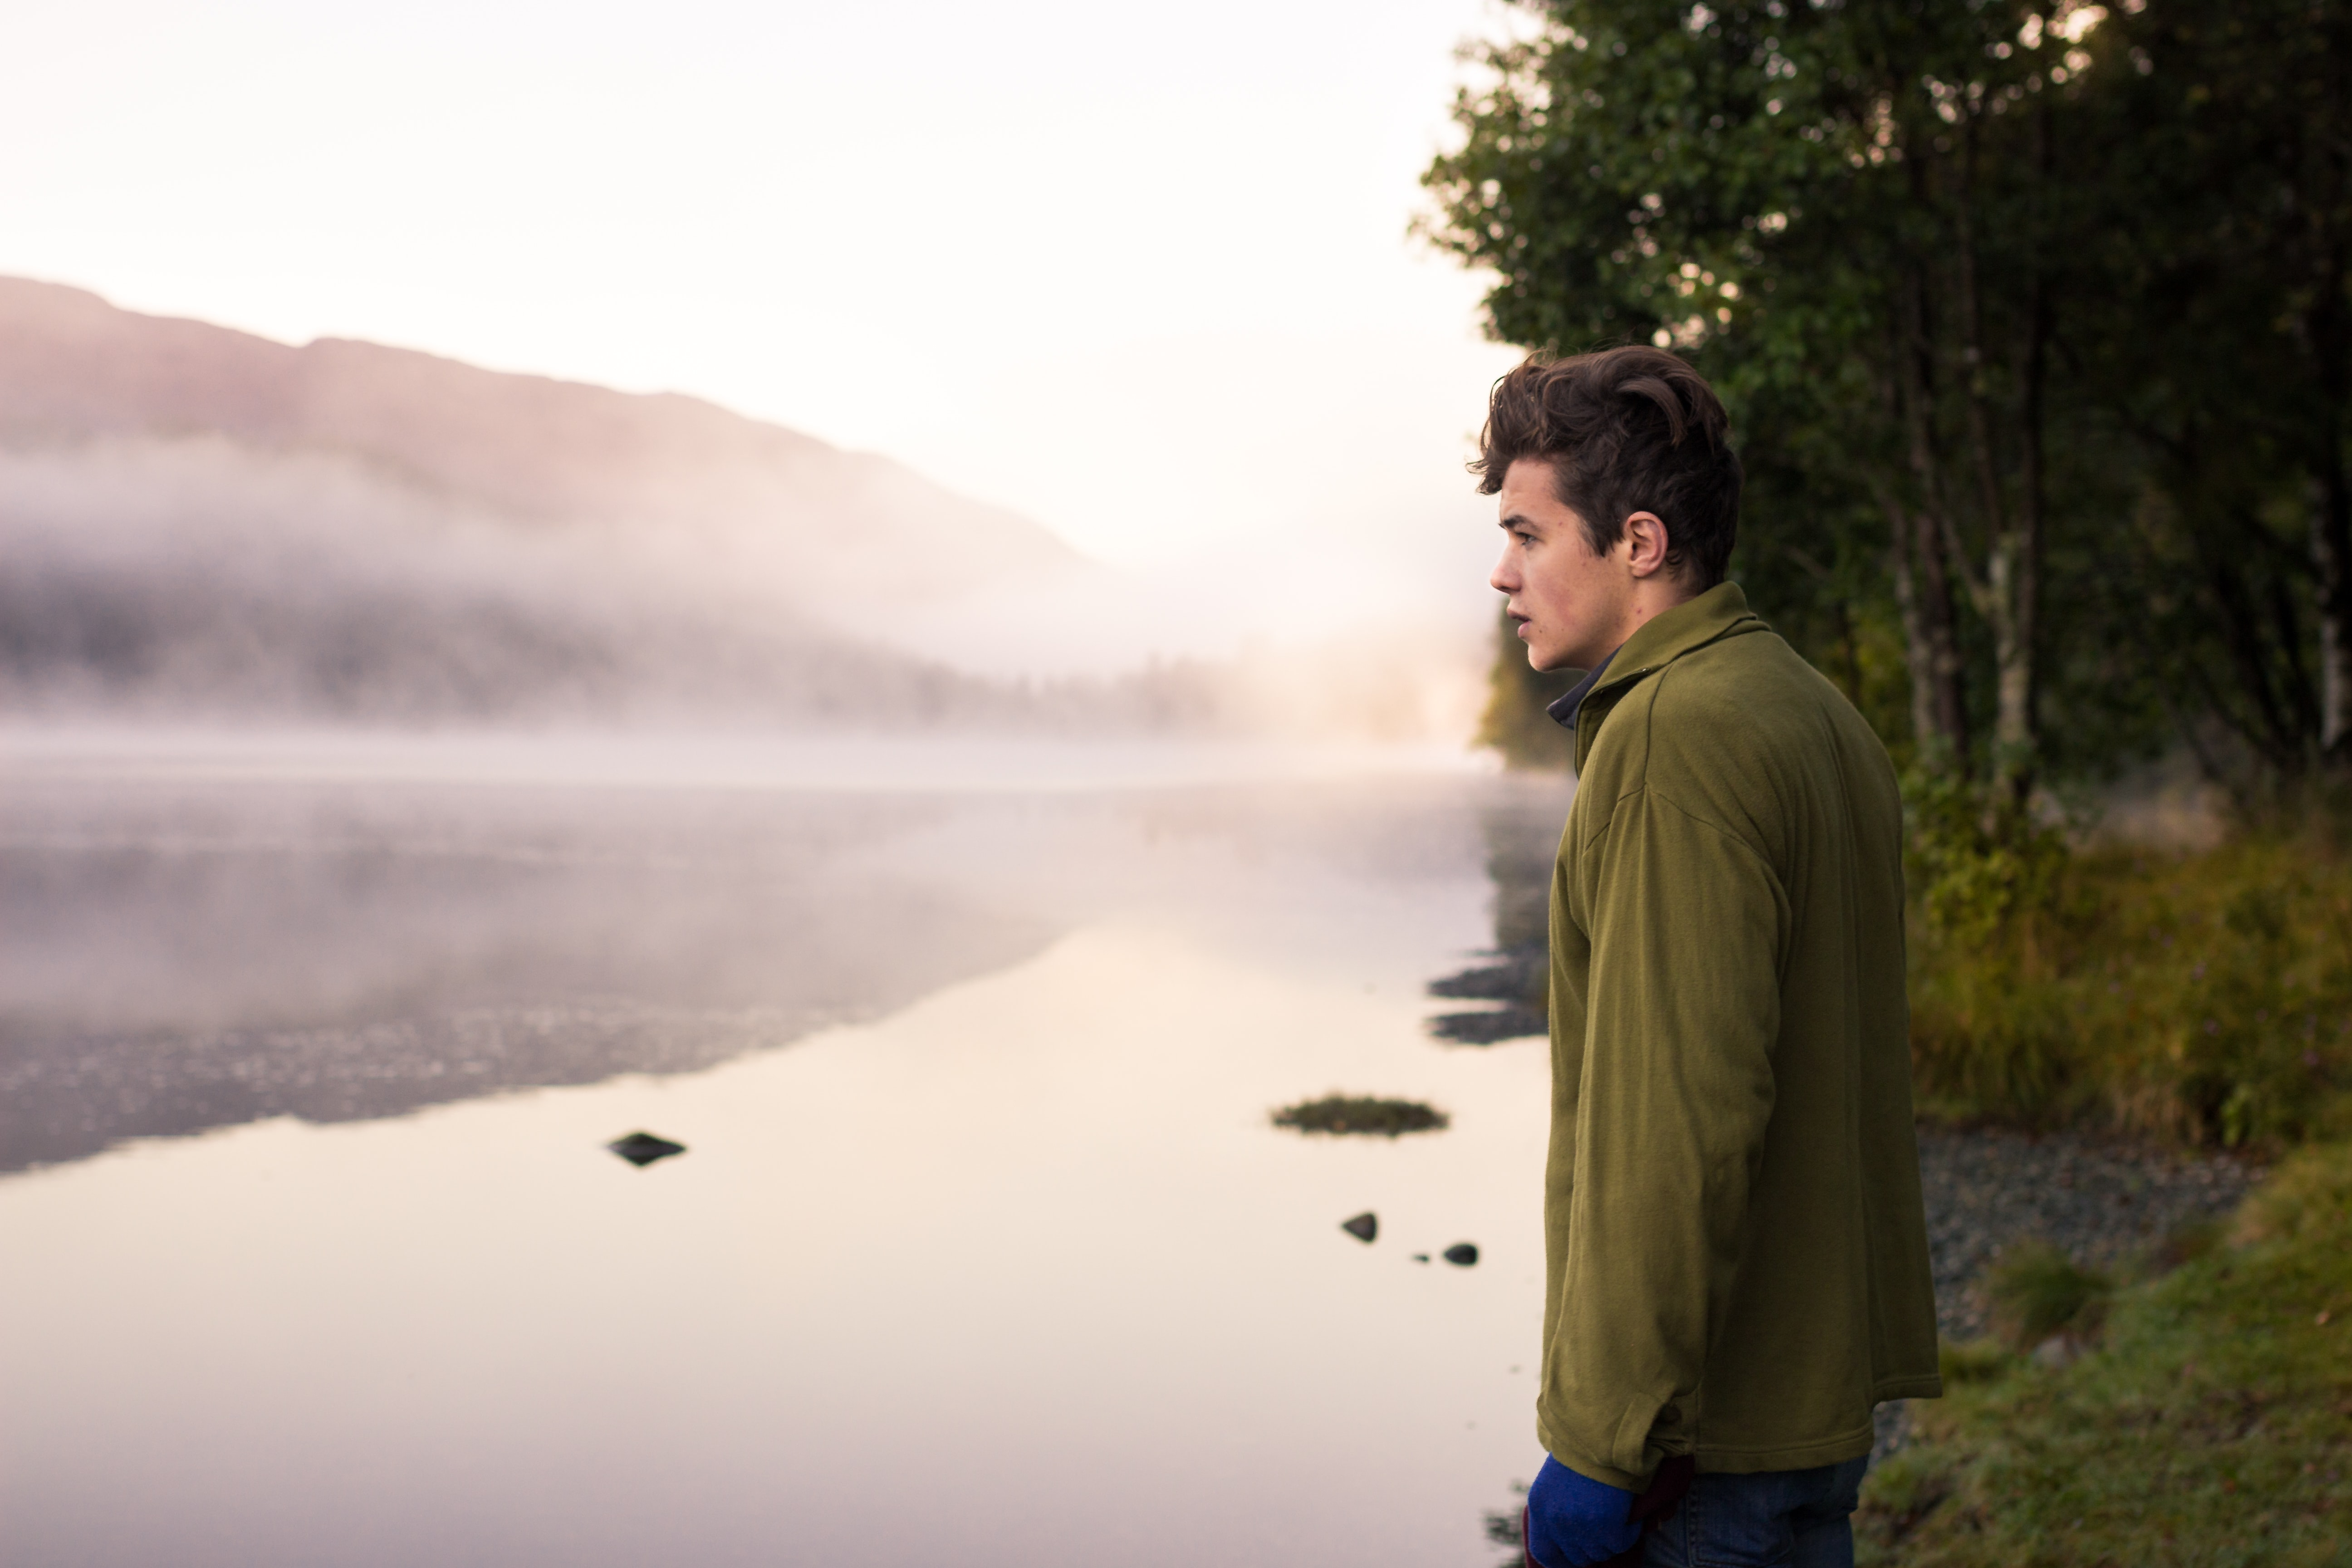 man staring at the body of water